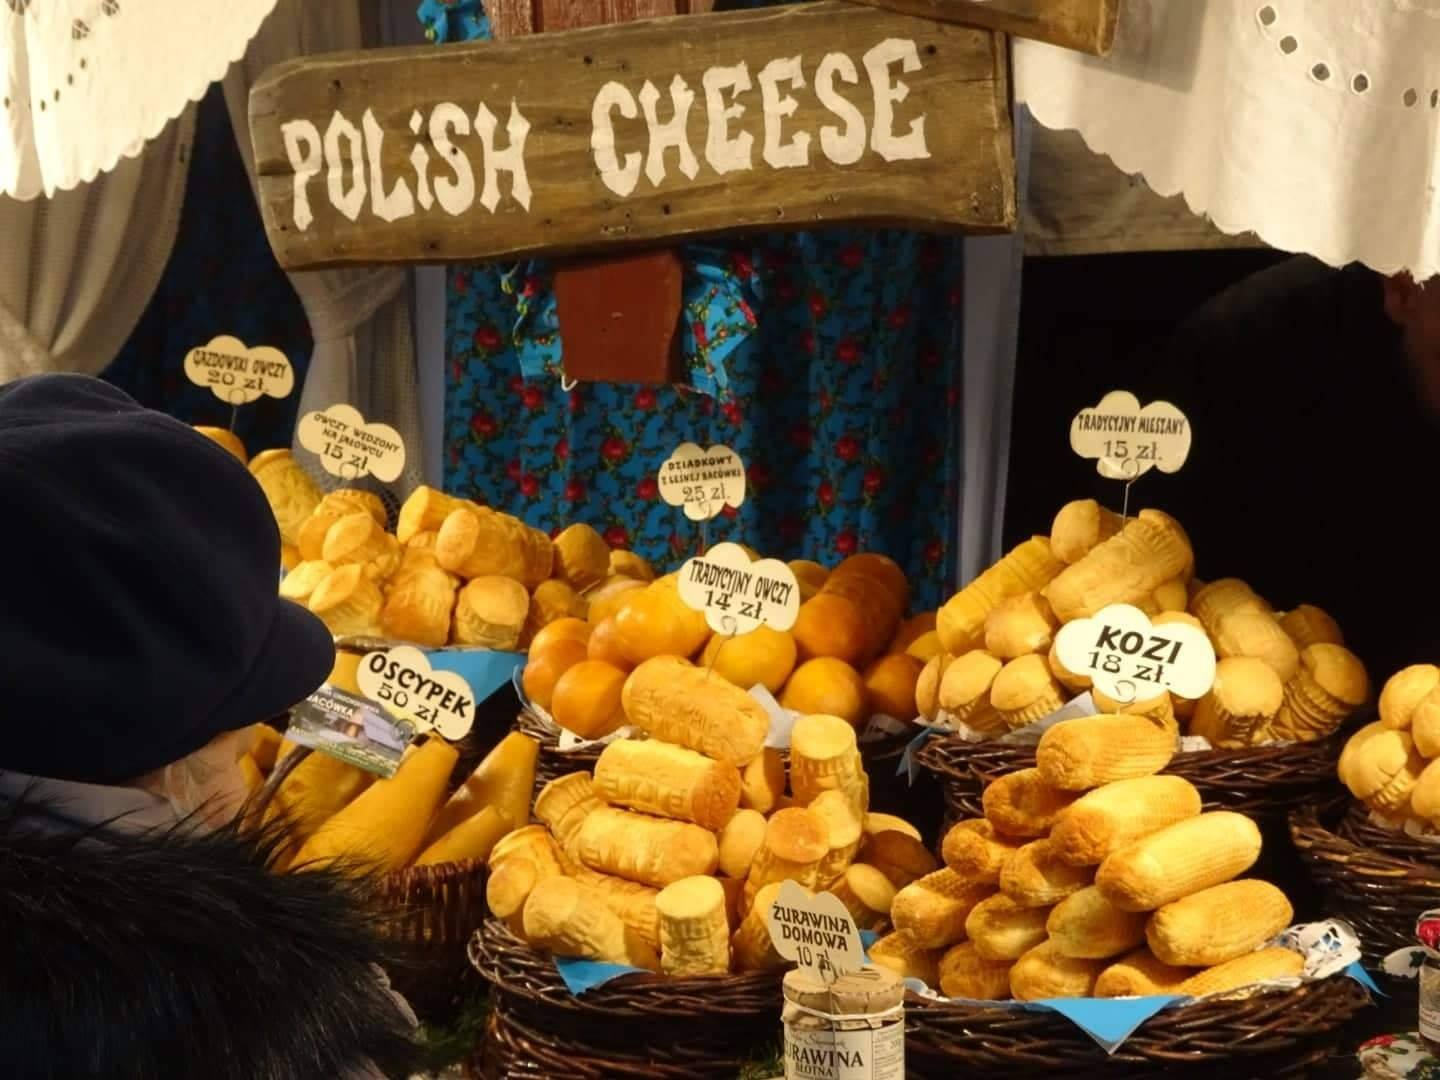 Polish cheese is delicious!